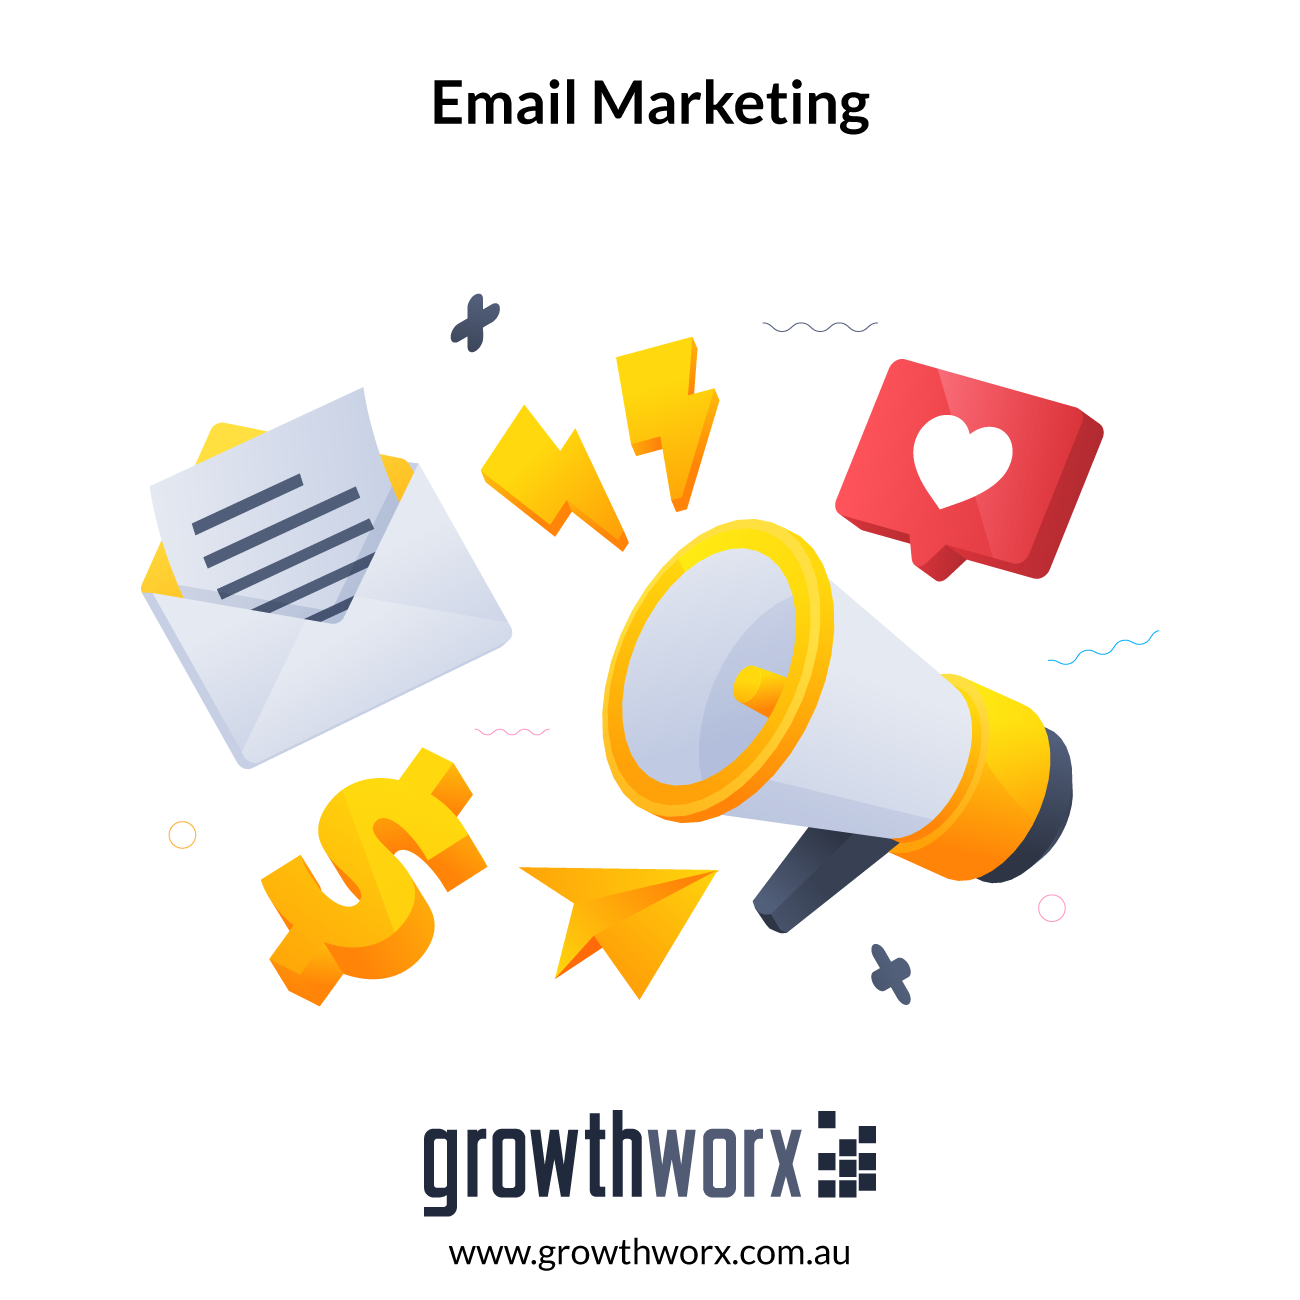 I will send emails manually one by one, email marketing 1 by 1 1